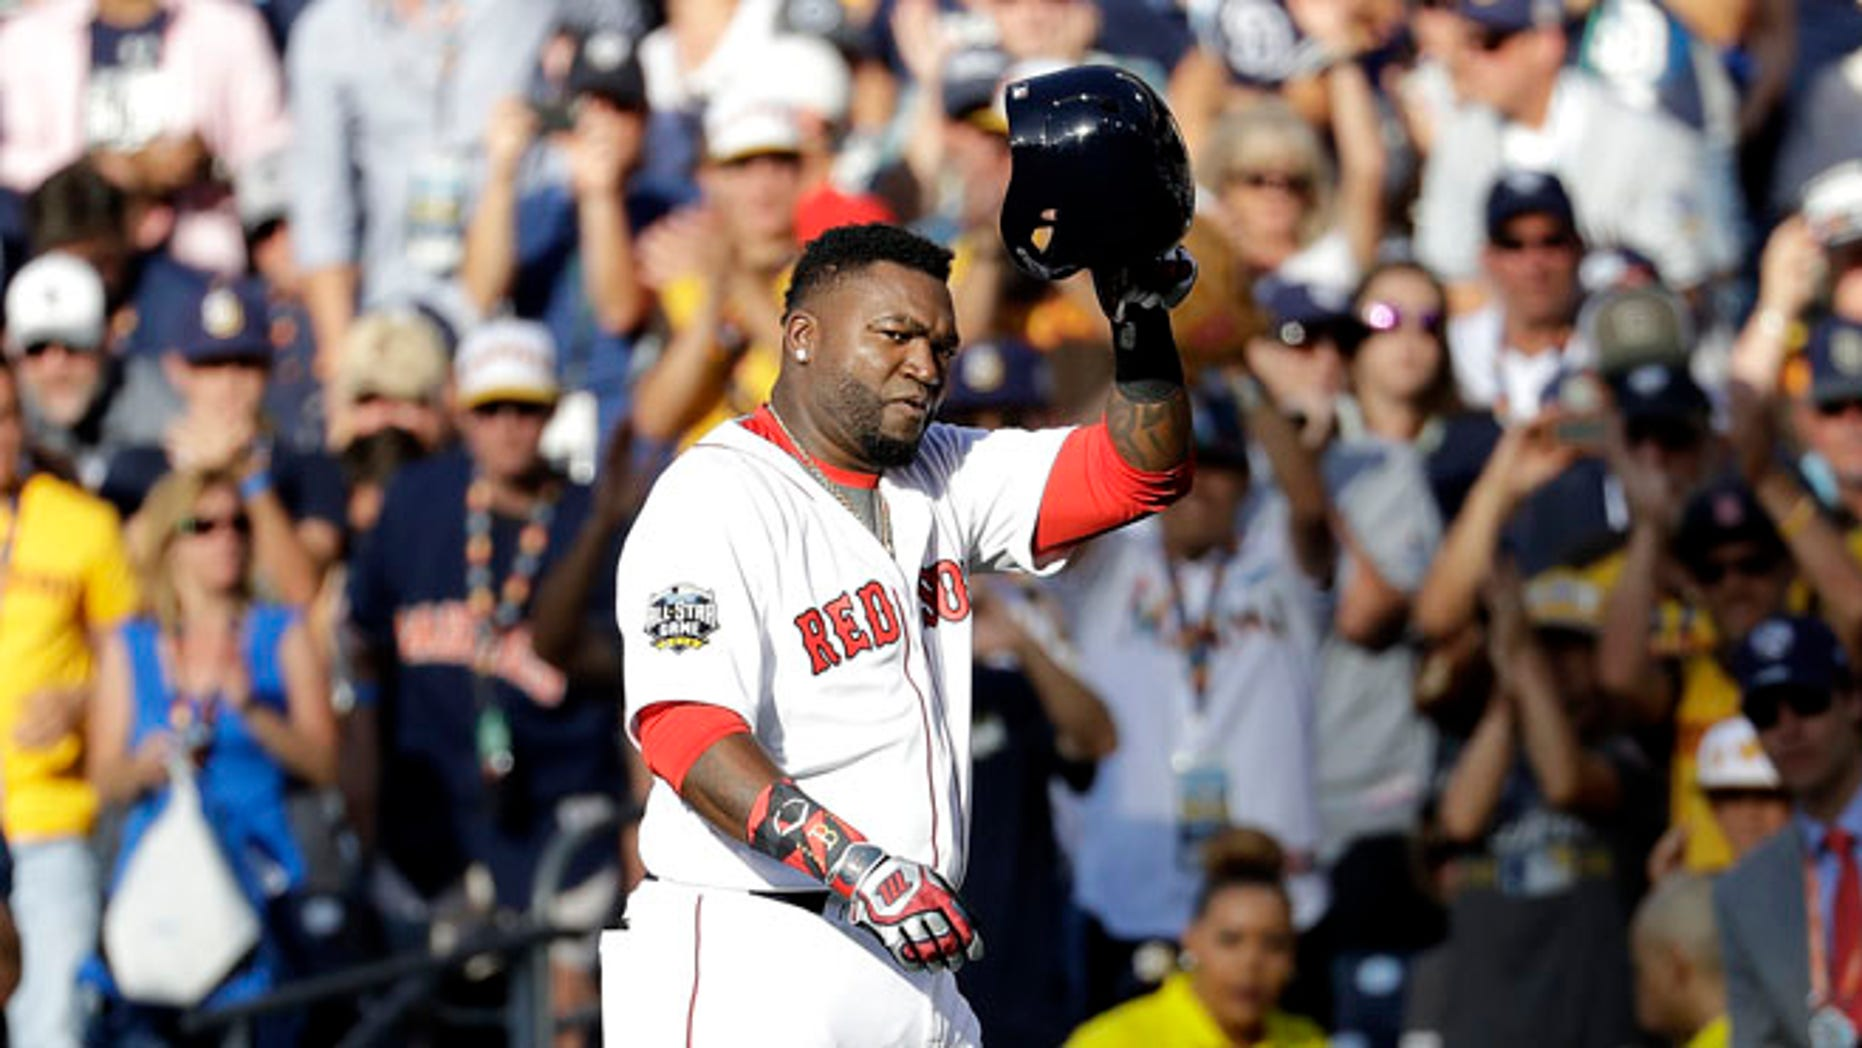 American League's David Ortiz, of the Boston Red Sox, acknowledges the crowd while leaving the game during the second inning of the MLB baseball All-Star Game against the National League, Tuesday, July 12, 2016, in San Diego. (AP Photo/Gregory Bull)